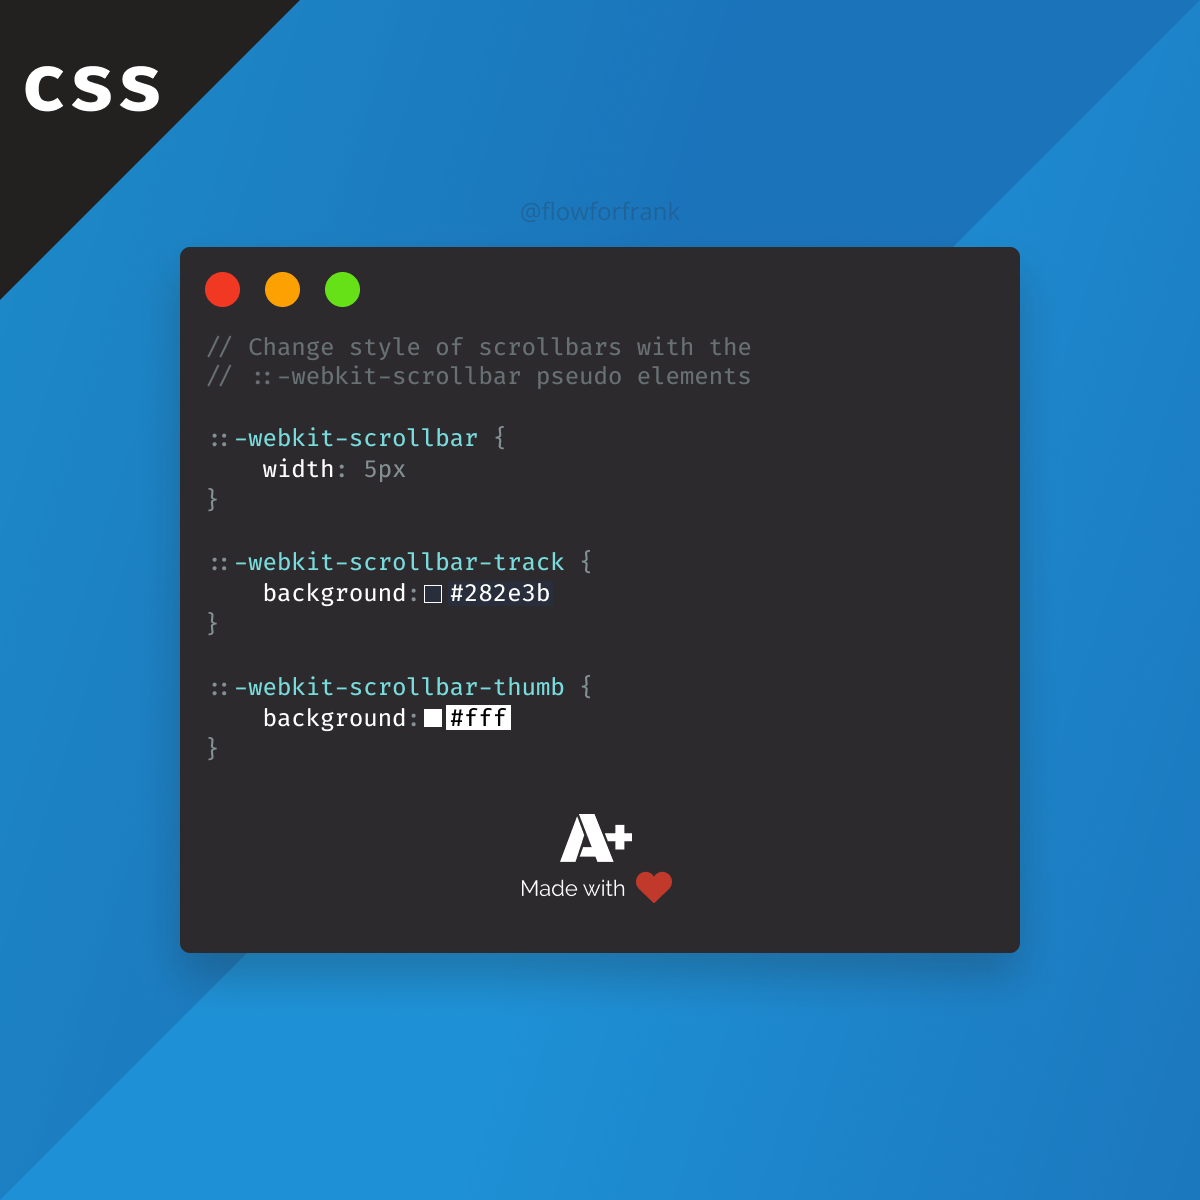 How To Change Scrollbars In Css Css Tutorial Web Design Tools Learn Web Development